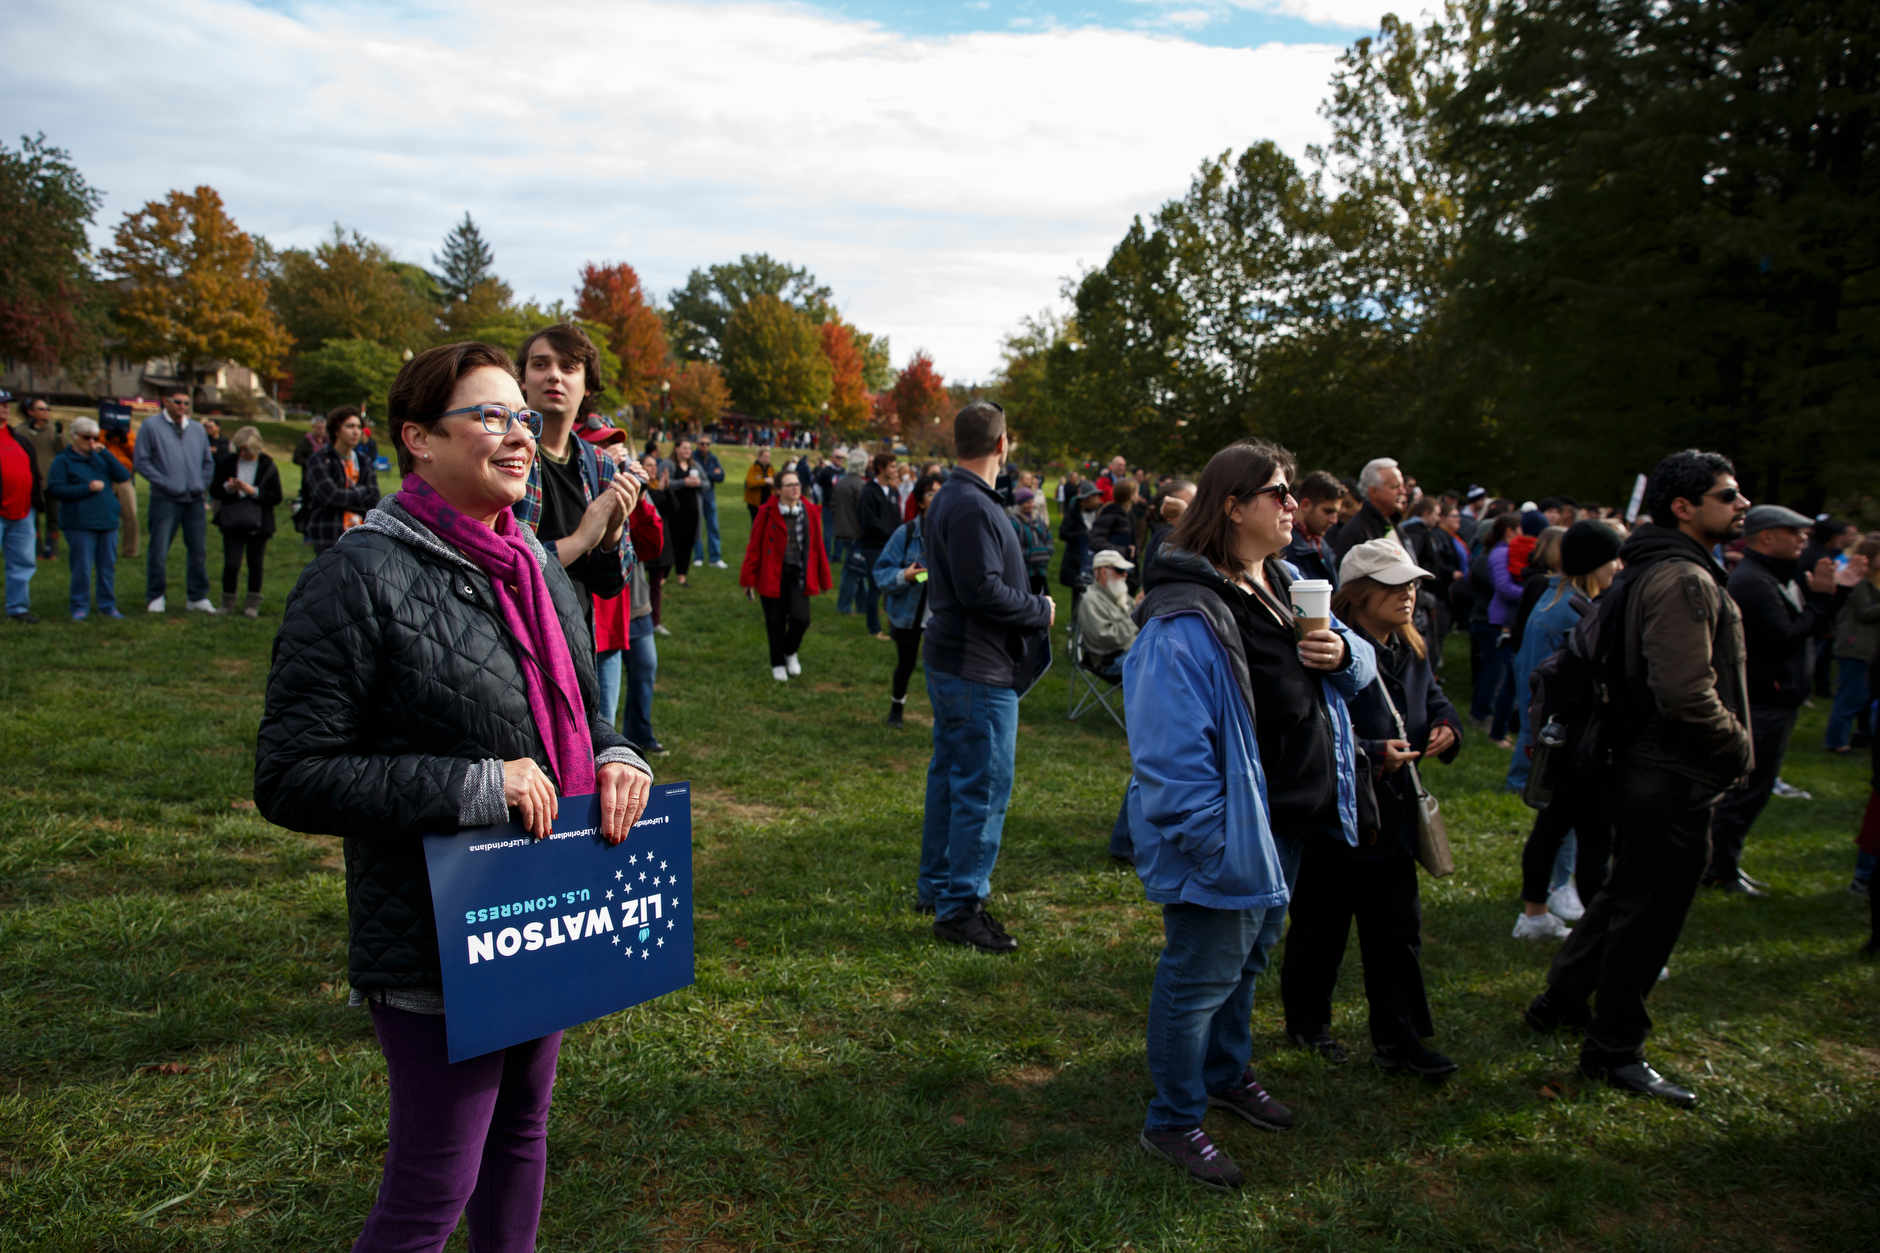 Supporters gather for a rally for Liz Watson, the Democratic nominee for Indiana's 9th congressional district, in Dunn Meadow at Indiana University Bloomington on Friday, Oct. 19, 2018. (James Brosher/IU Communications)